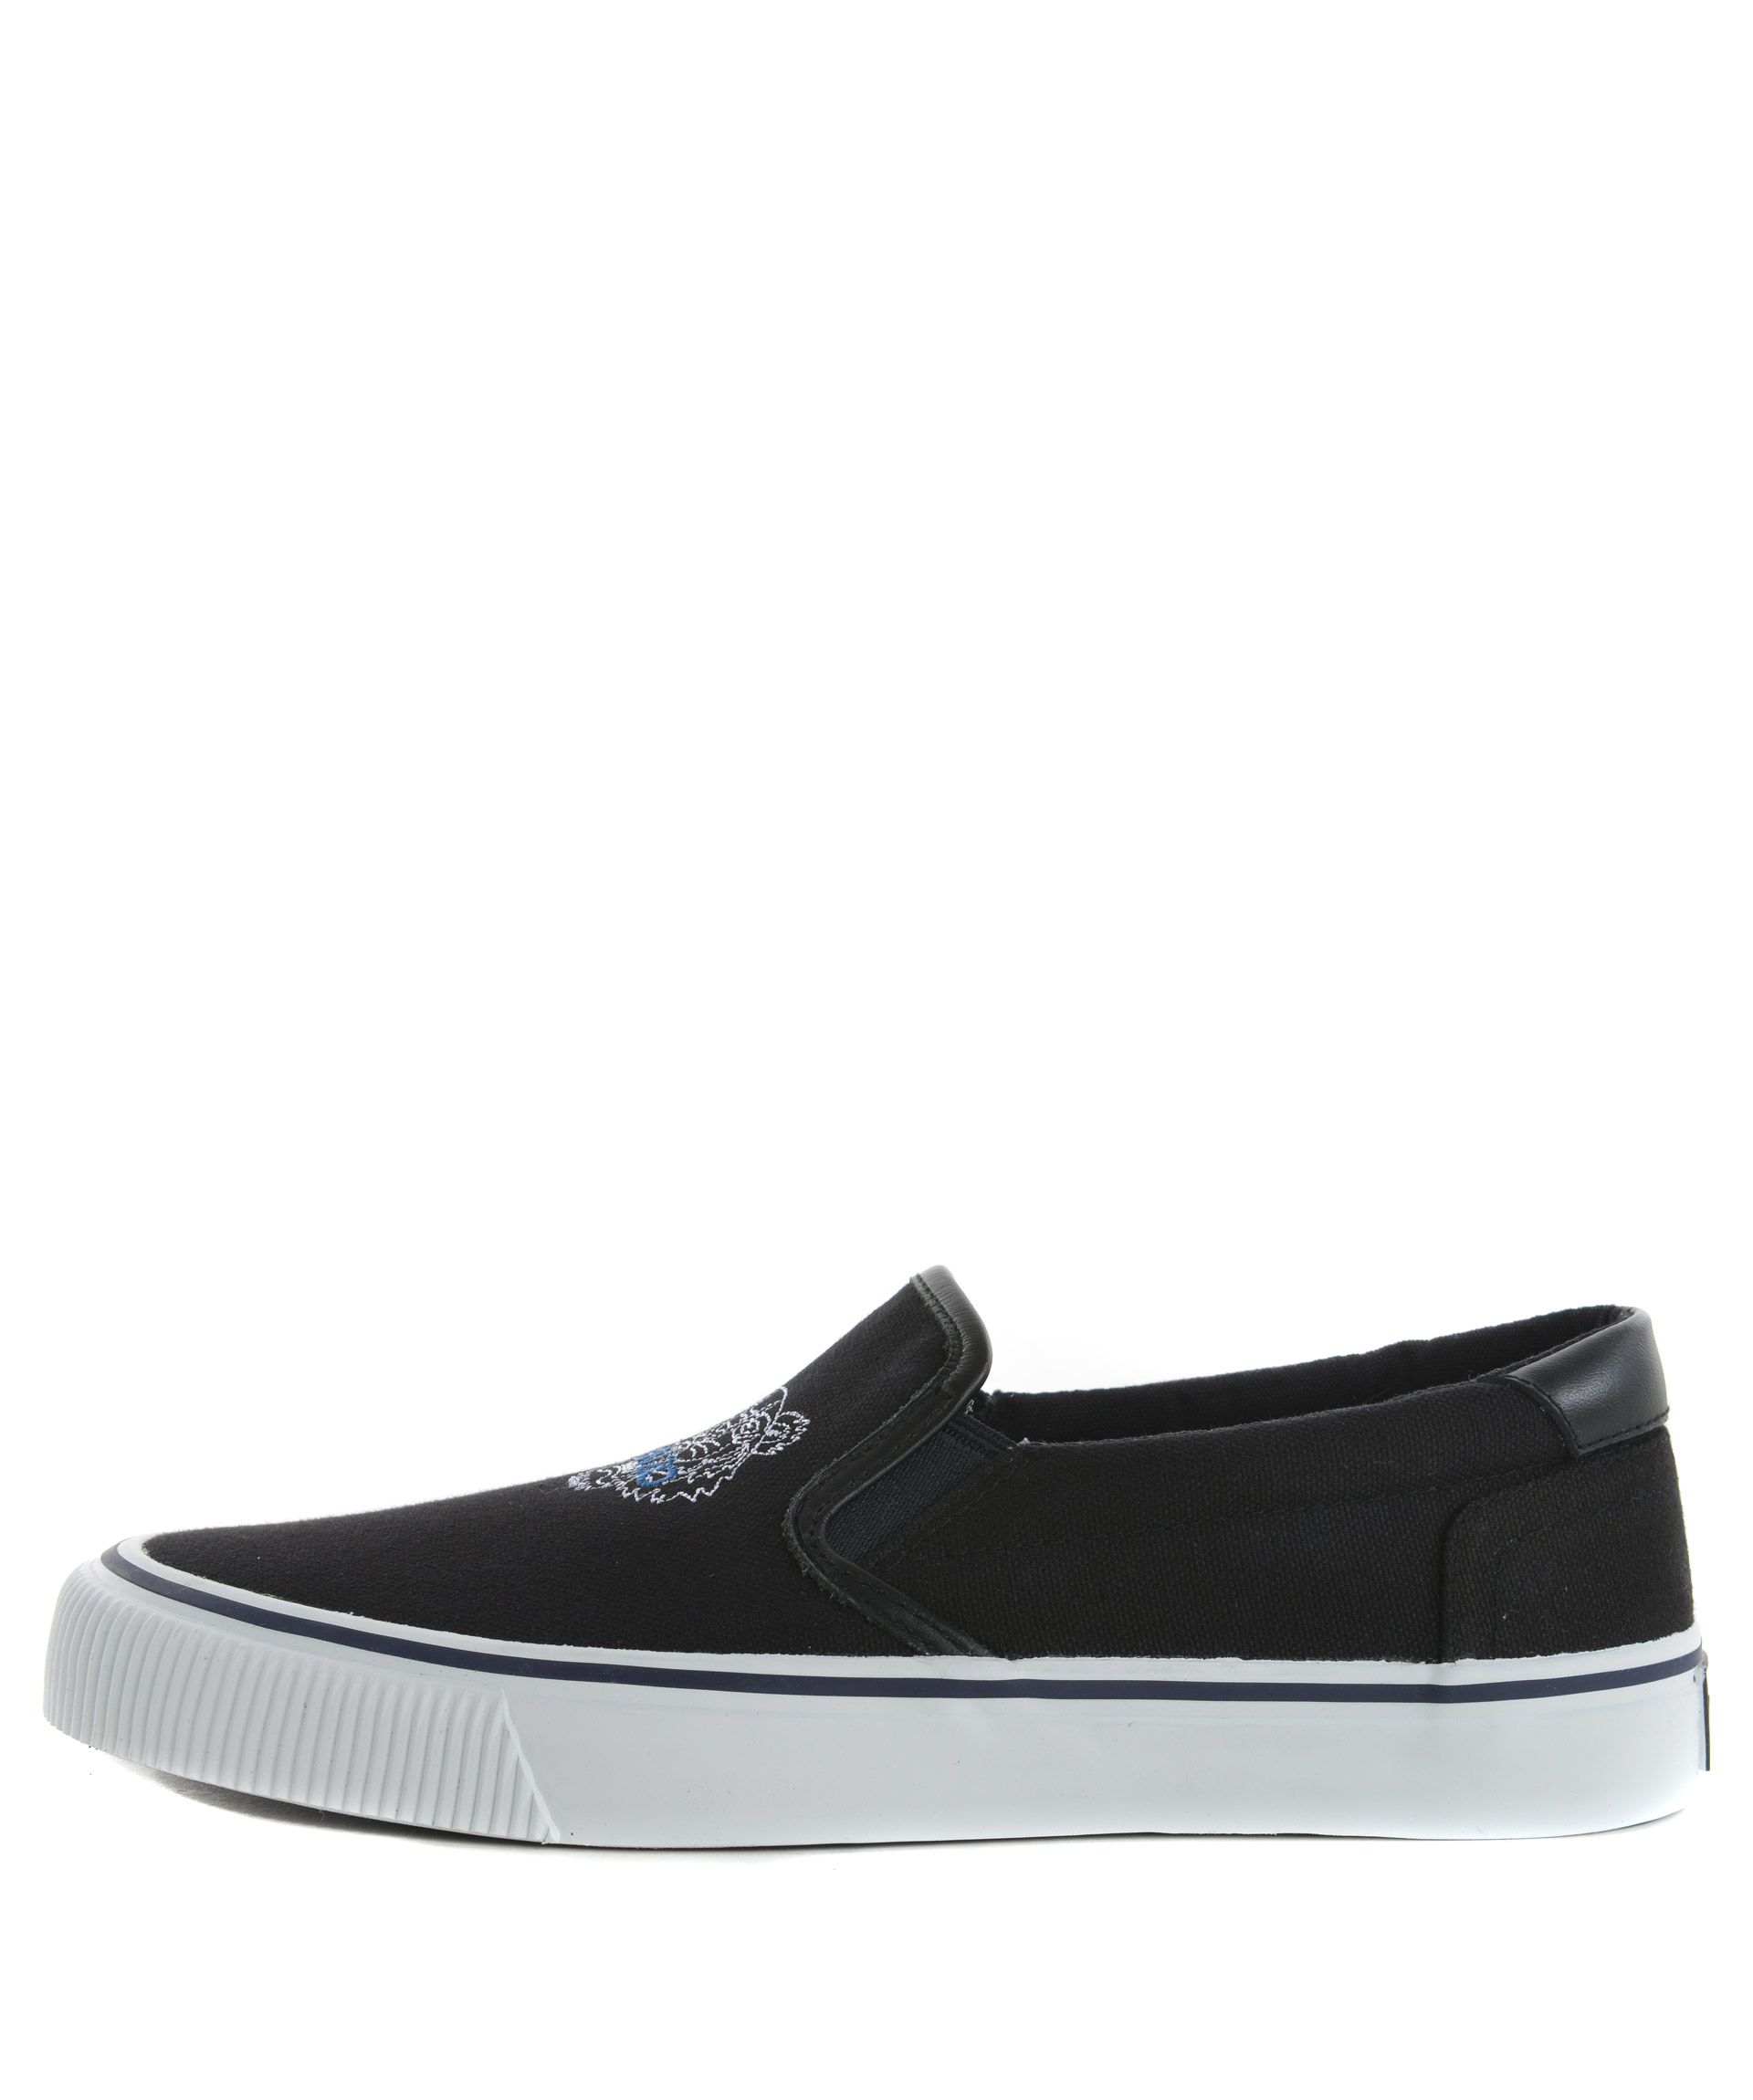 kenzo kenzo tiger slip on sneakers nero s